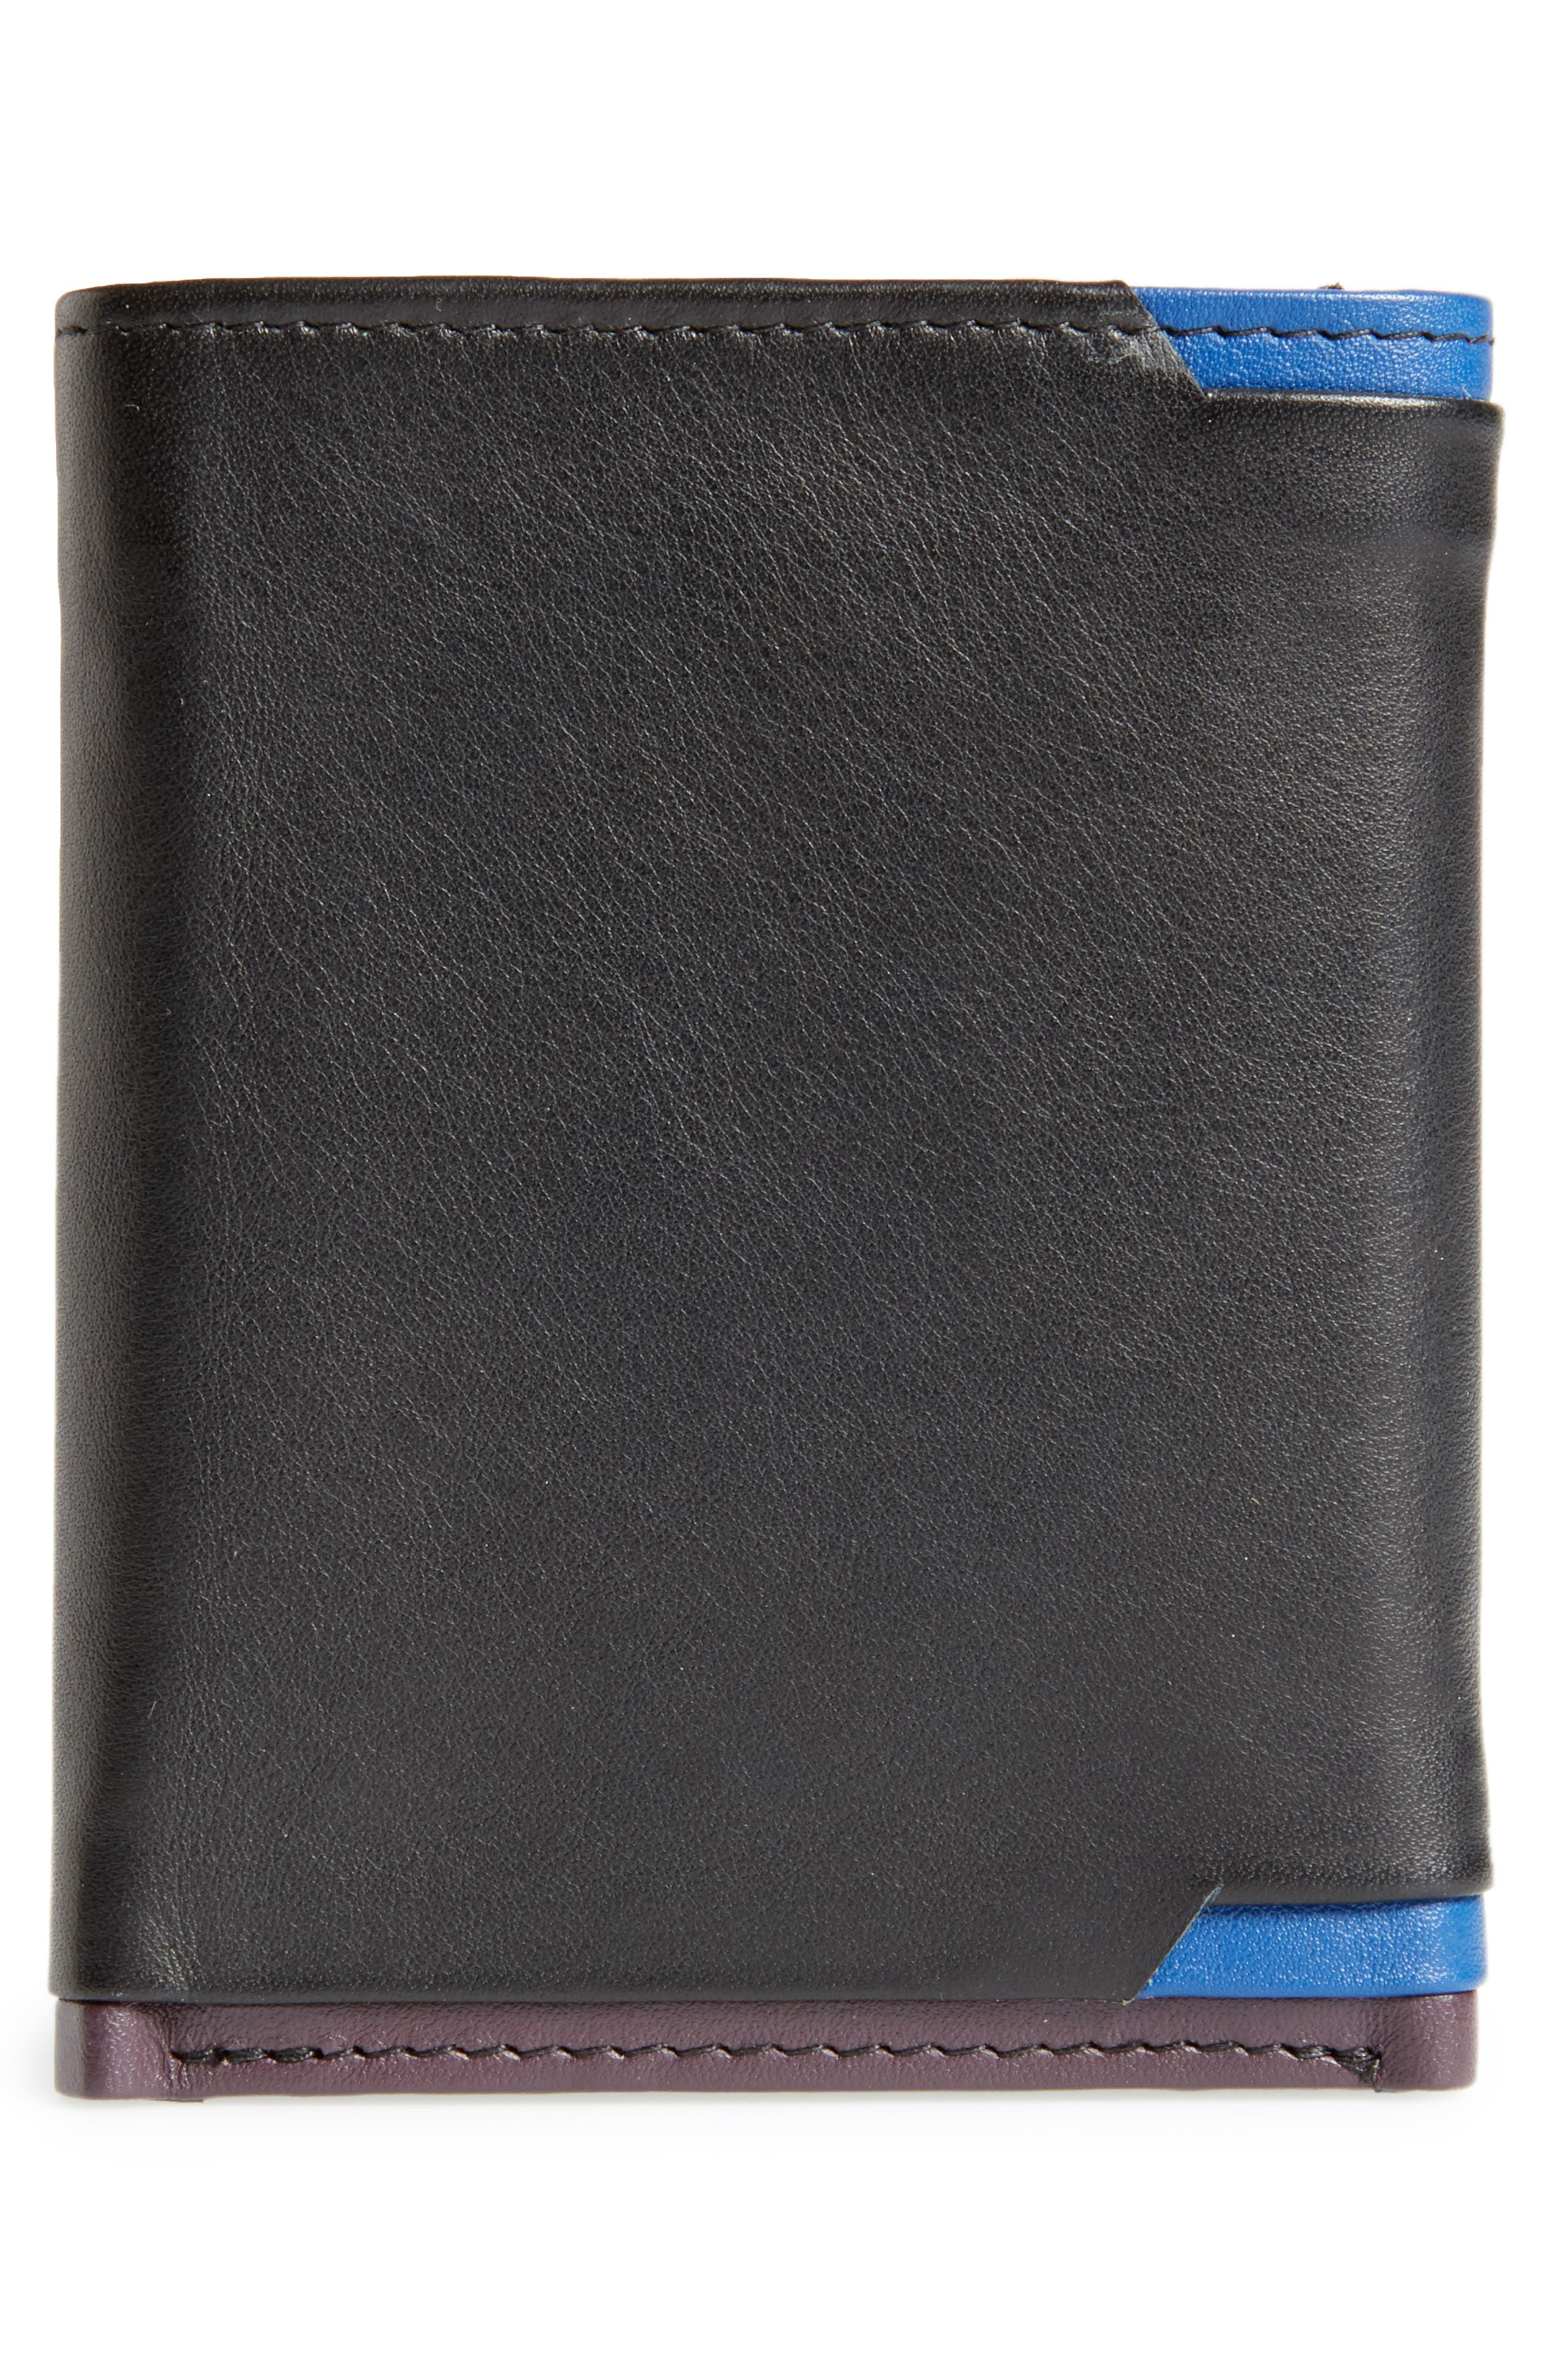 Vien Corner Detail Trifold Leather Wallet,                             Alternate thumbnail 3, color,                             Black